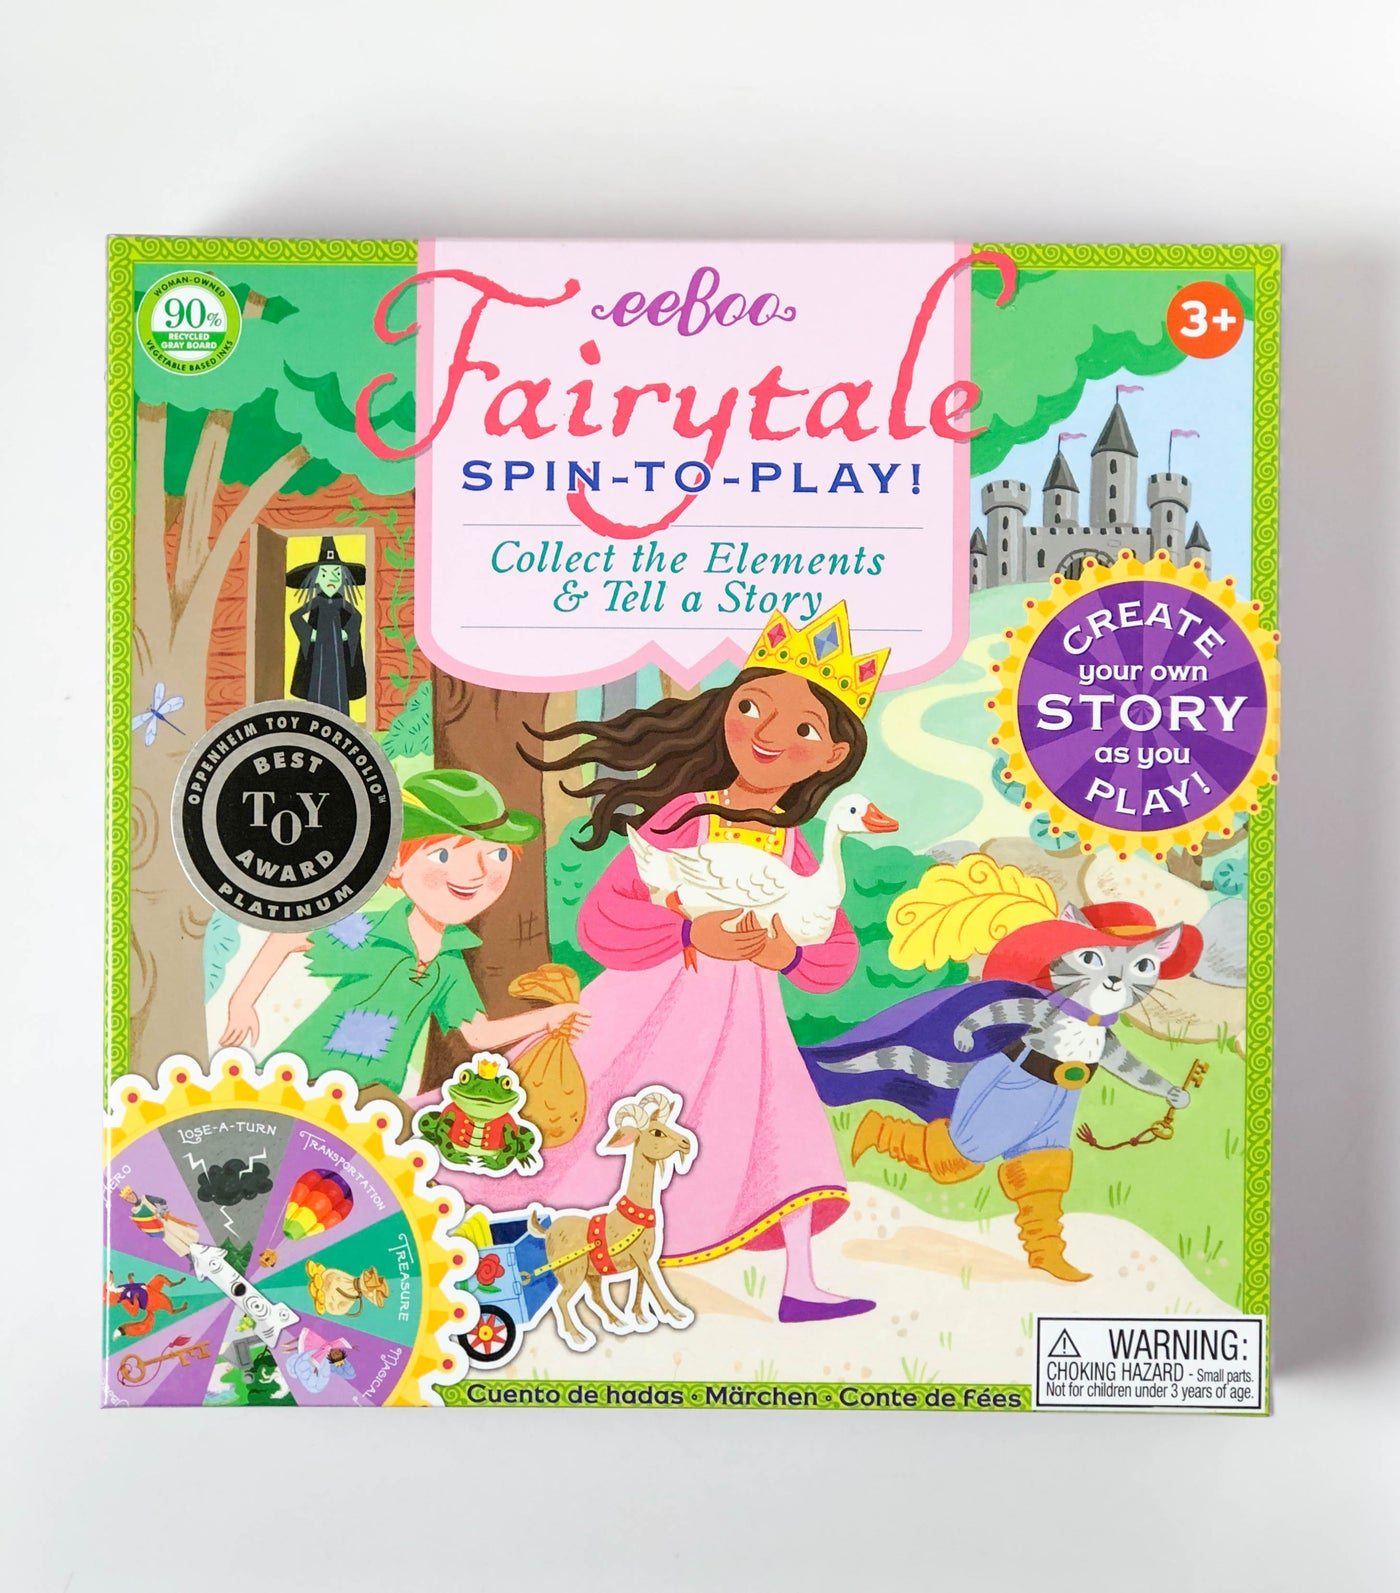 Spin to Play! Fairytale